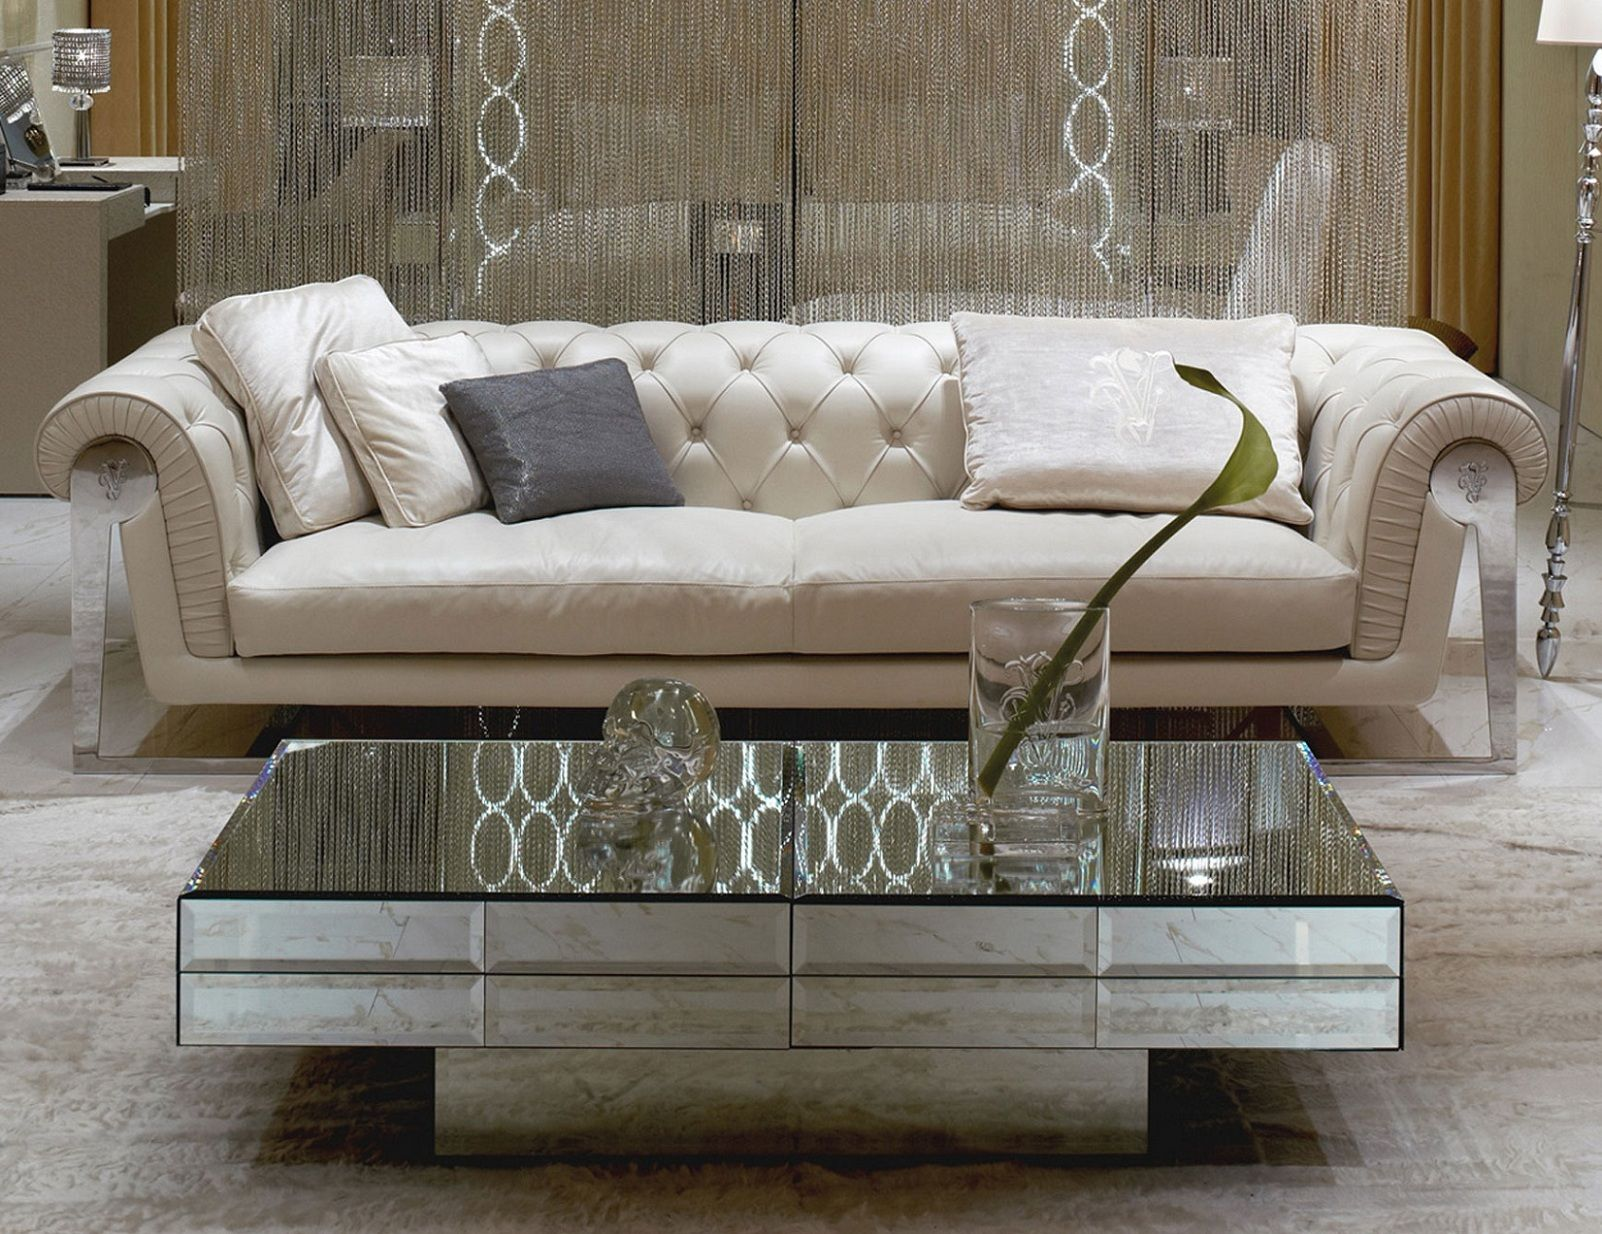 Hollywood Luxe Living Room Interiors Designer Furniture